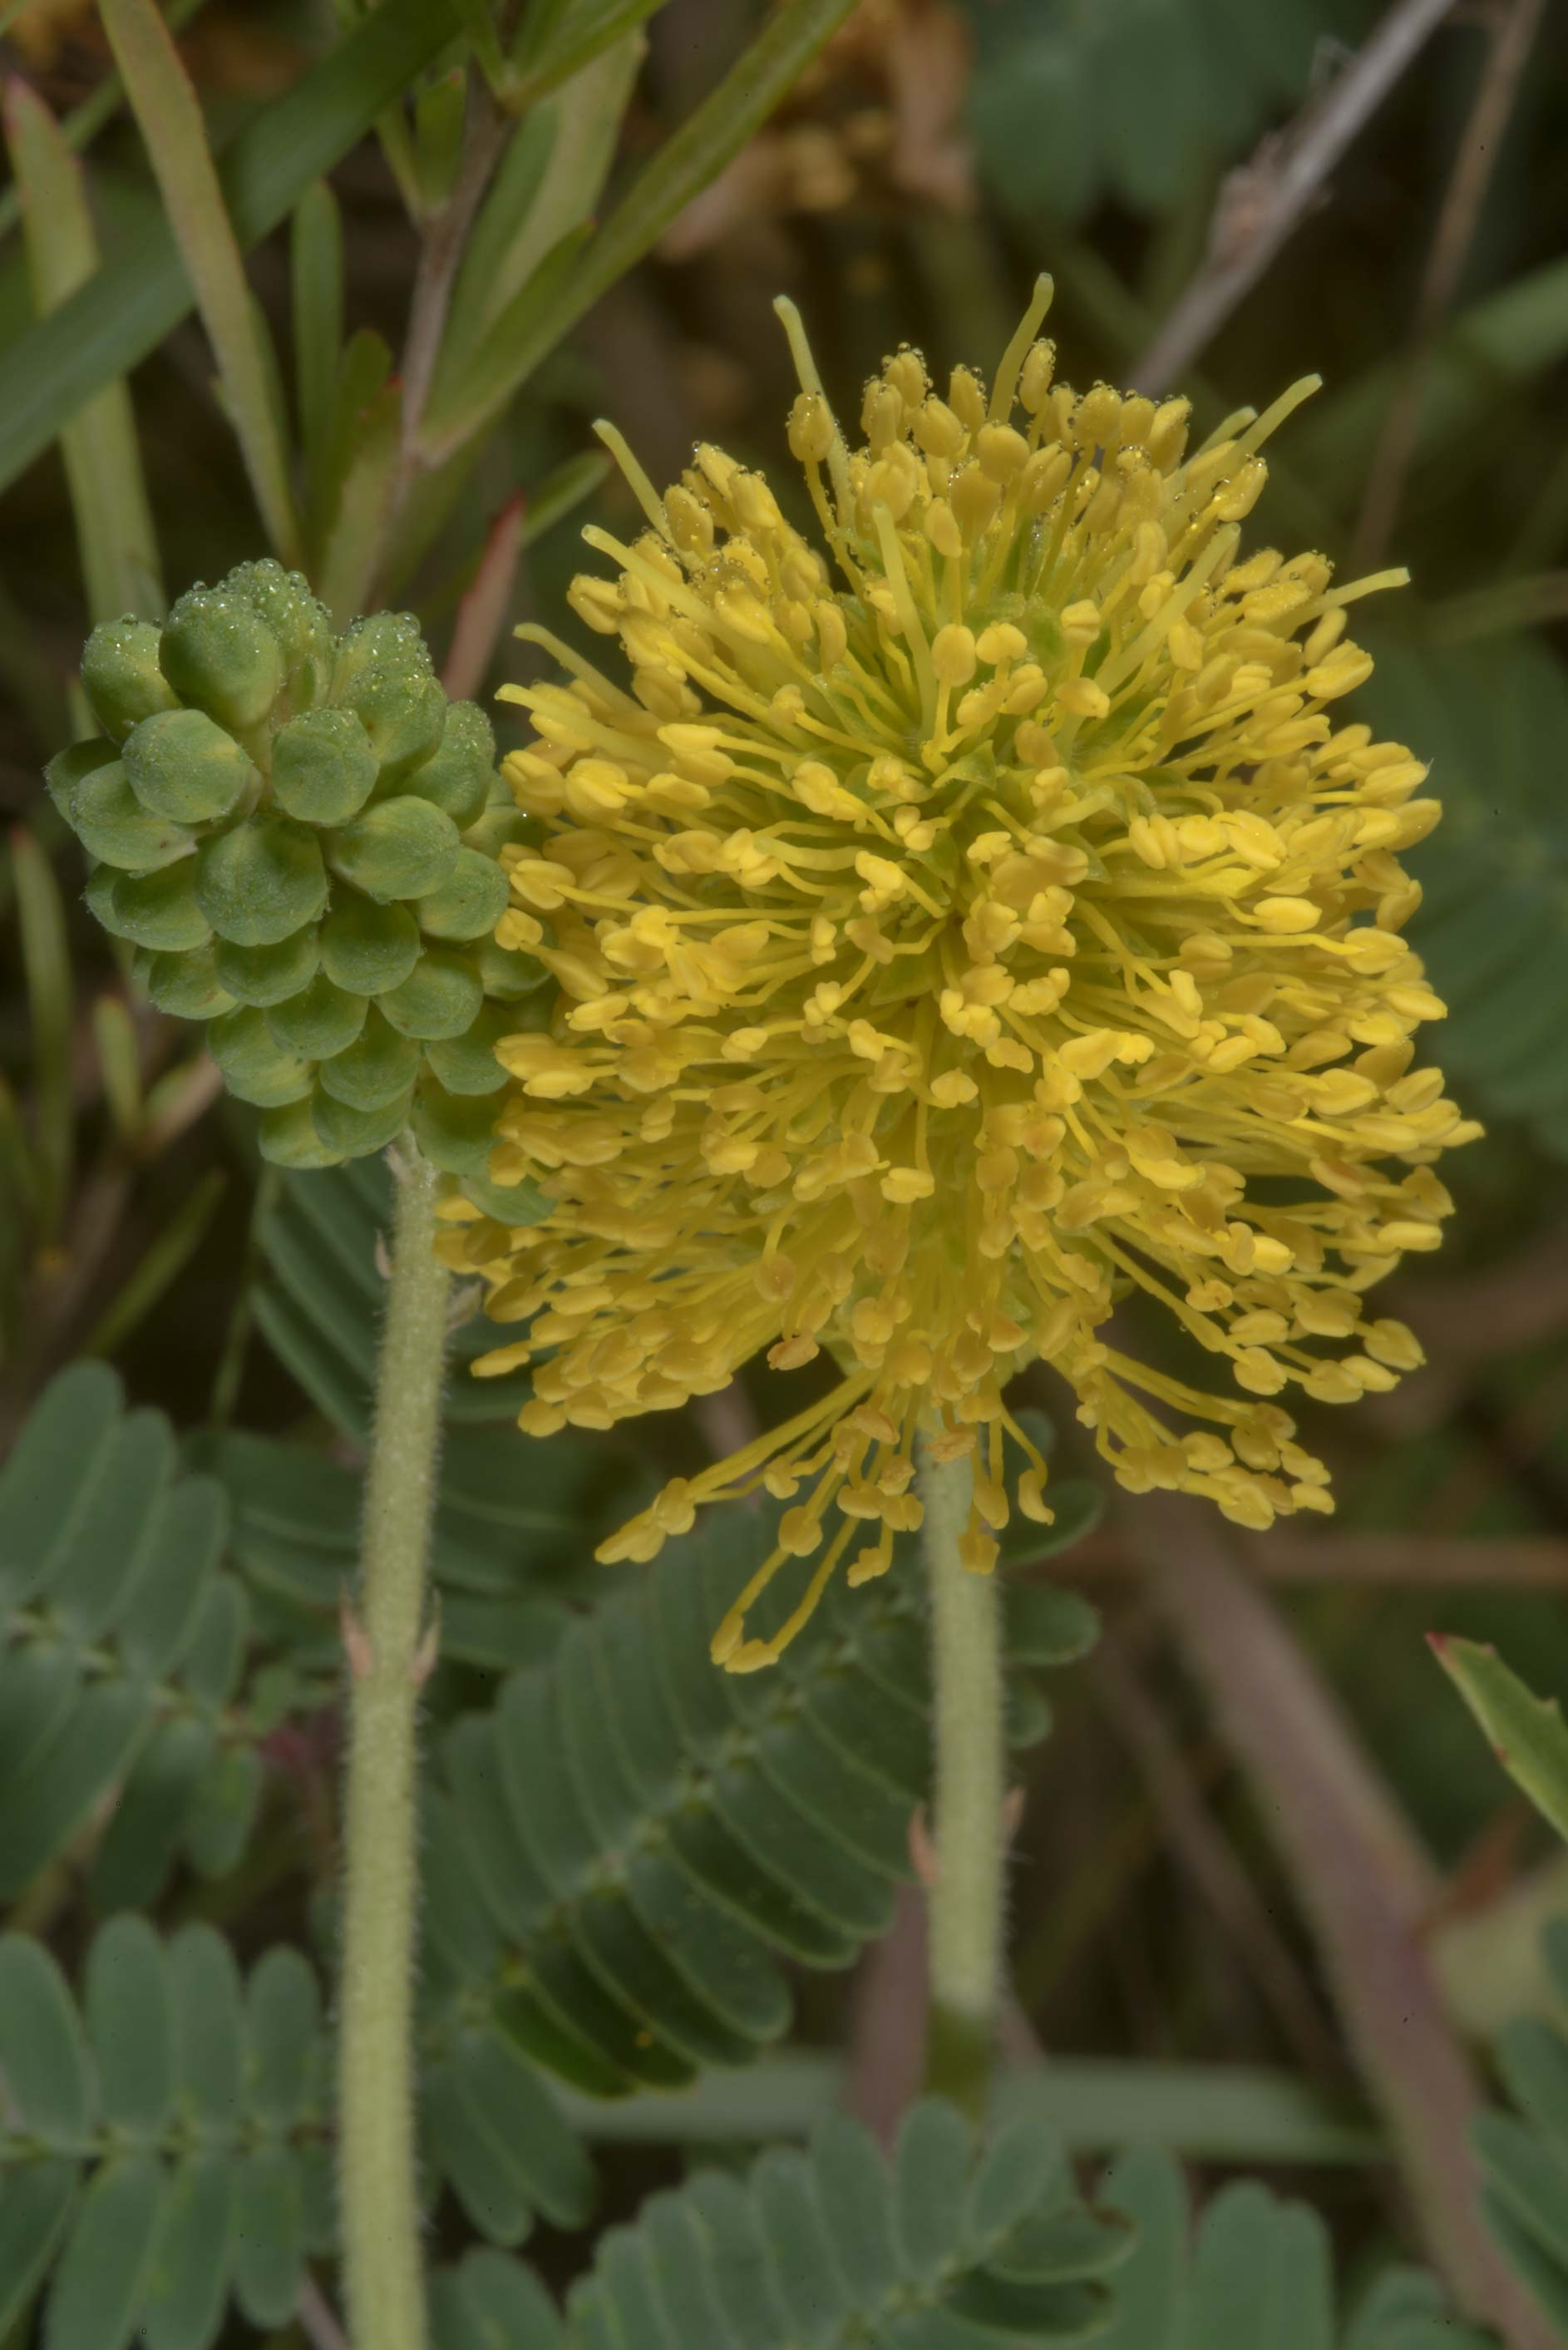 Flowers of Yellow puff (Neptunia lutea) in Lake Bryan Park. Bryan, Texas